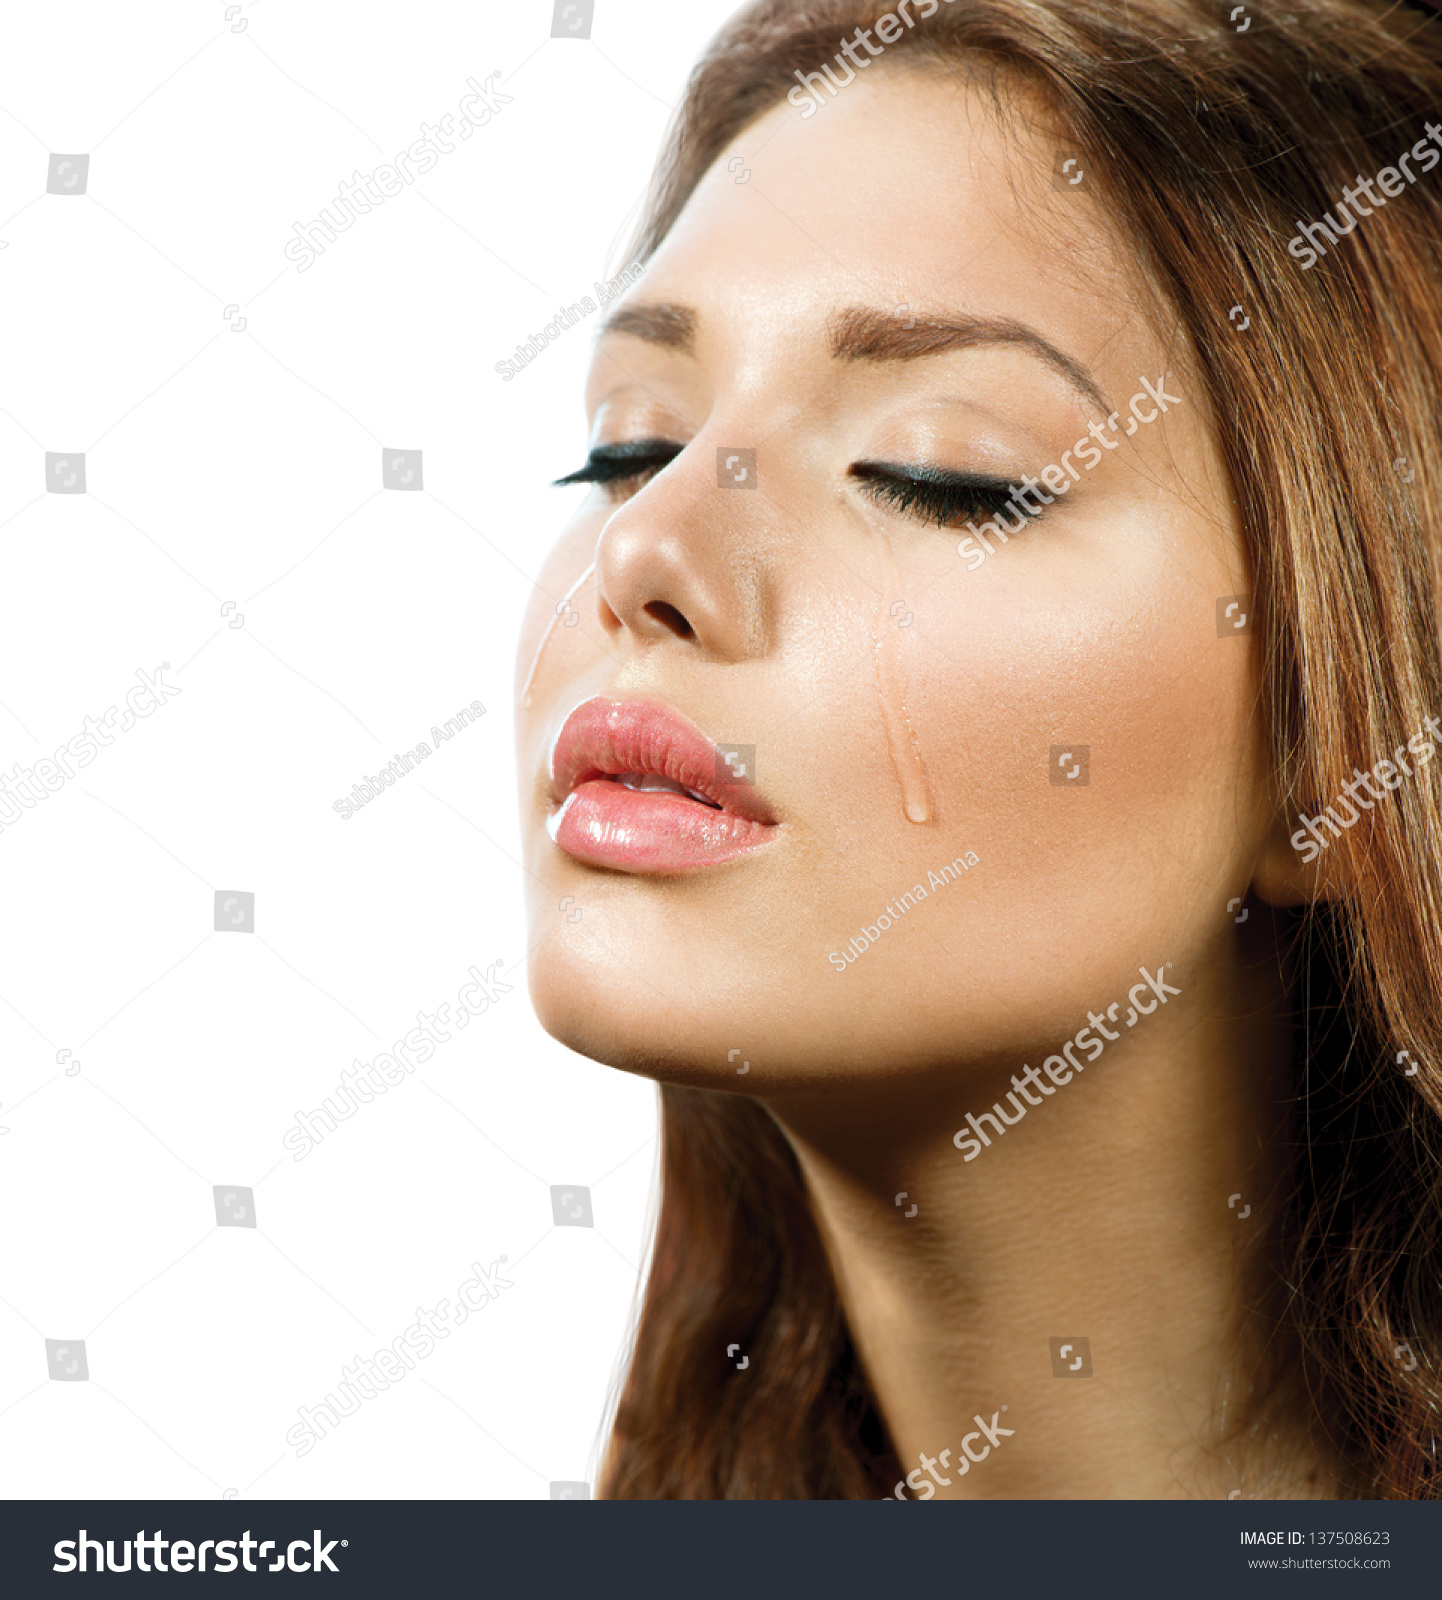 crying woman stock photo crying woman beauty girl crying tears cry stock photo 139